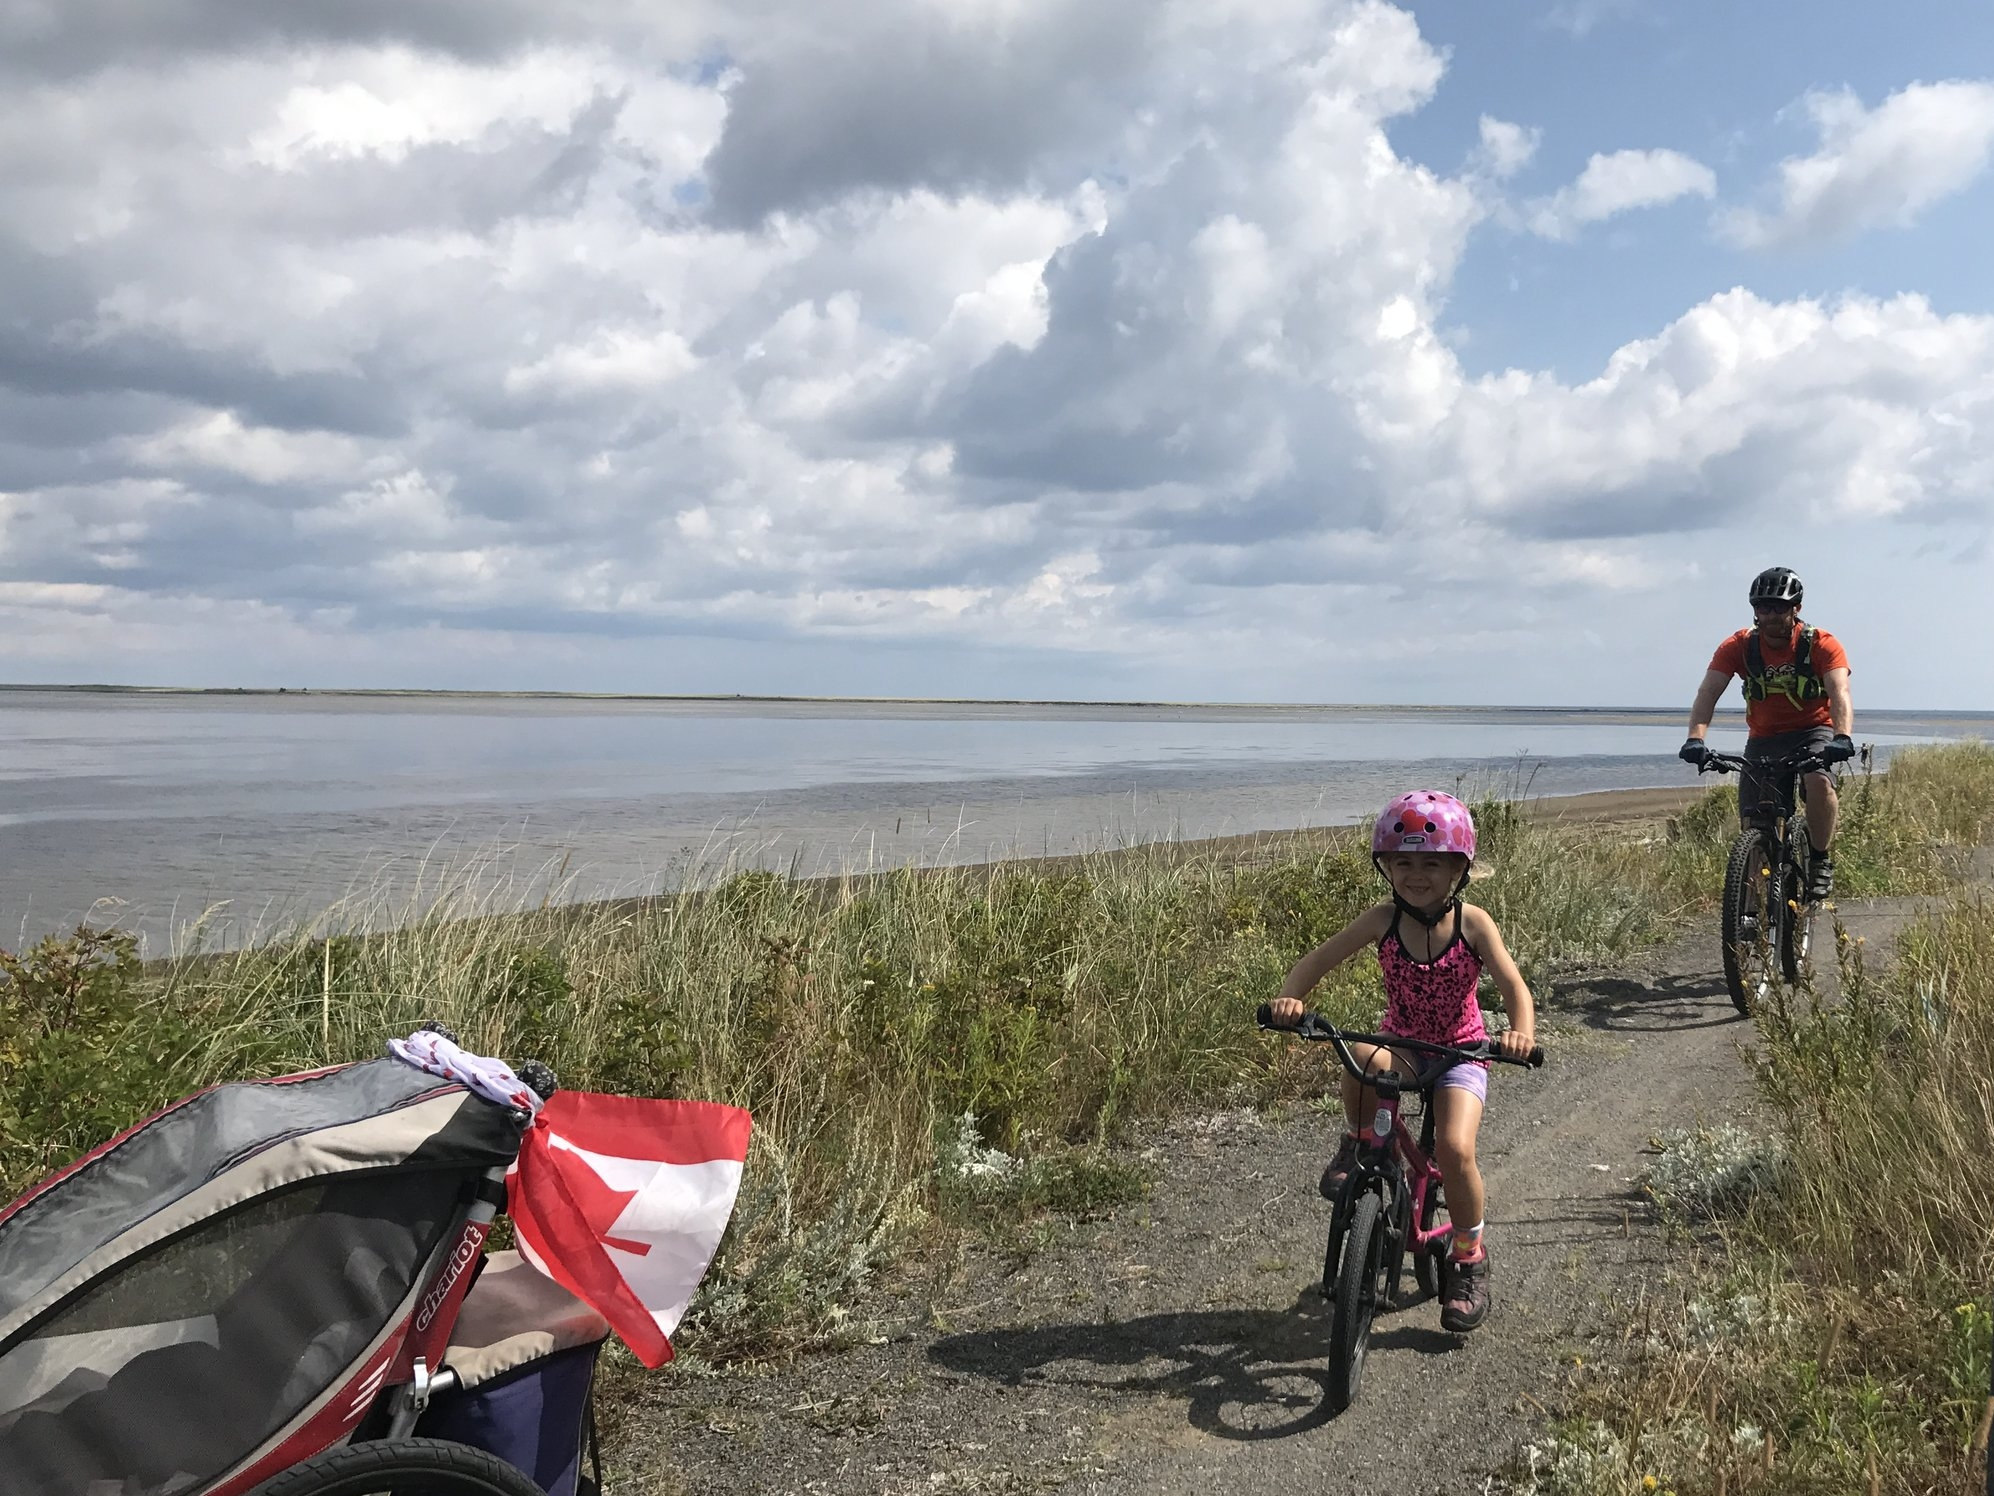 Riding along the coastline in Kouchibouguac.